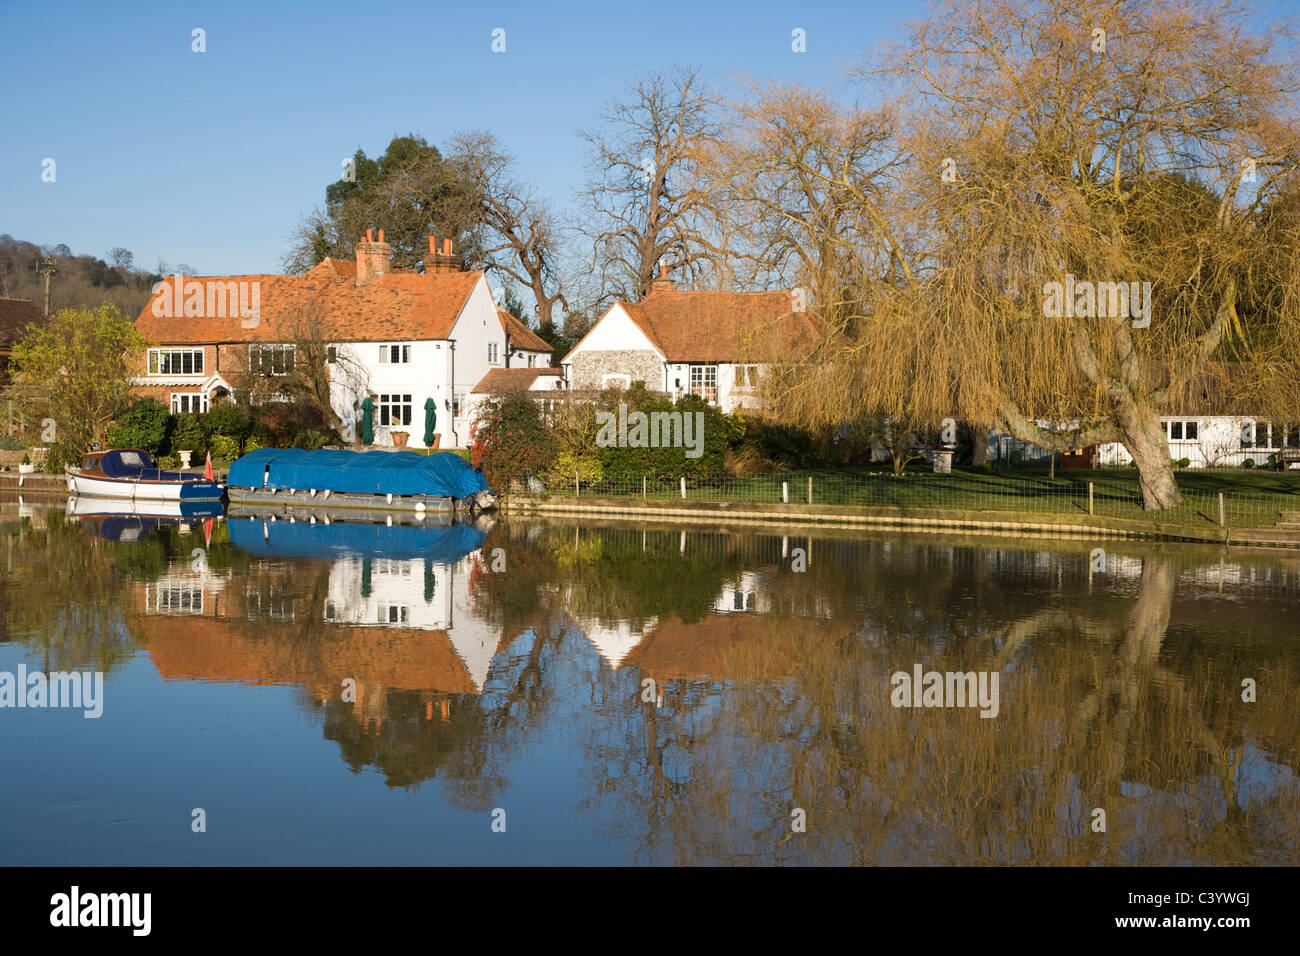 Views from Hambleden Weir downstream of Henley-on-Thames. Oxfordshire. England. UK. - Stock Image